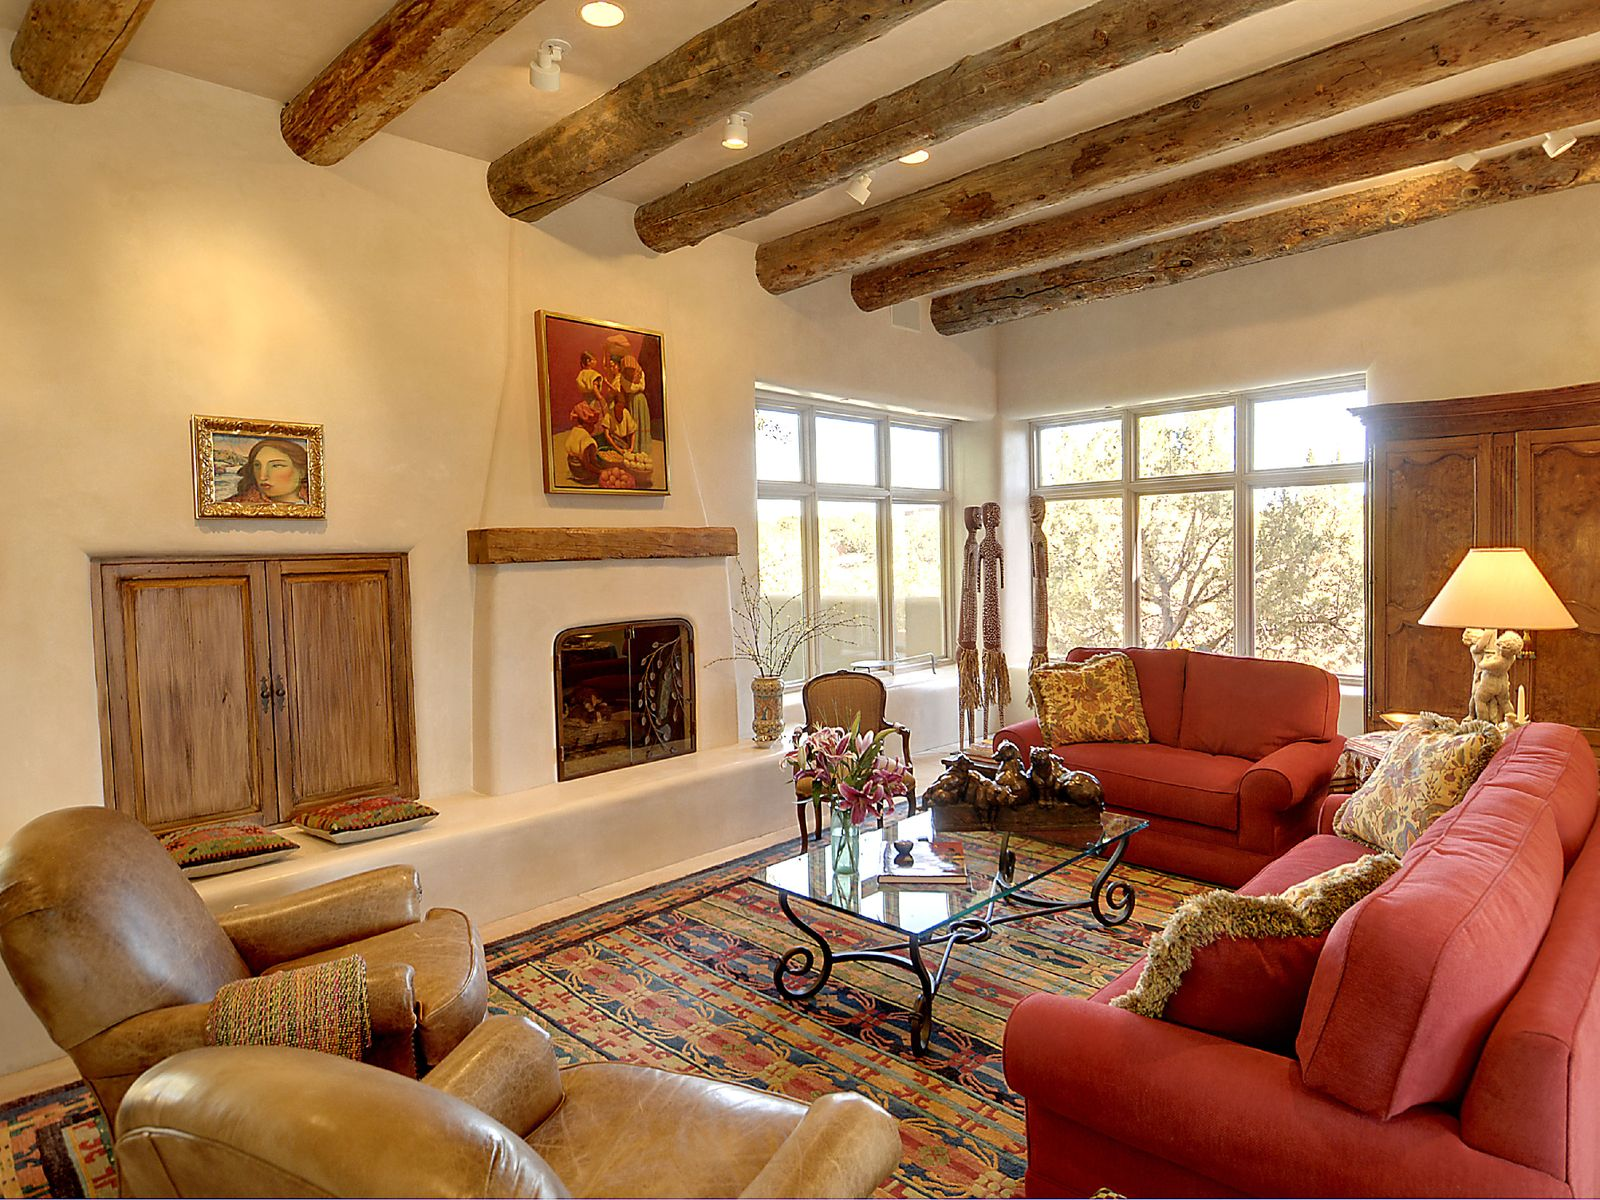 135 Wildhorse, Santa Fe NM Single Family Home - Santa Fe Real Estate